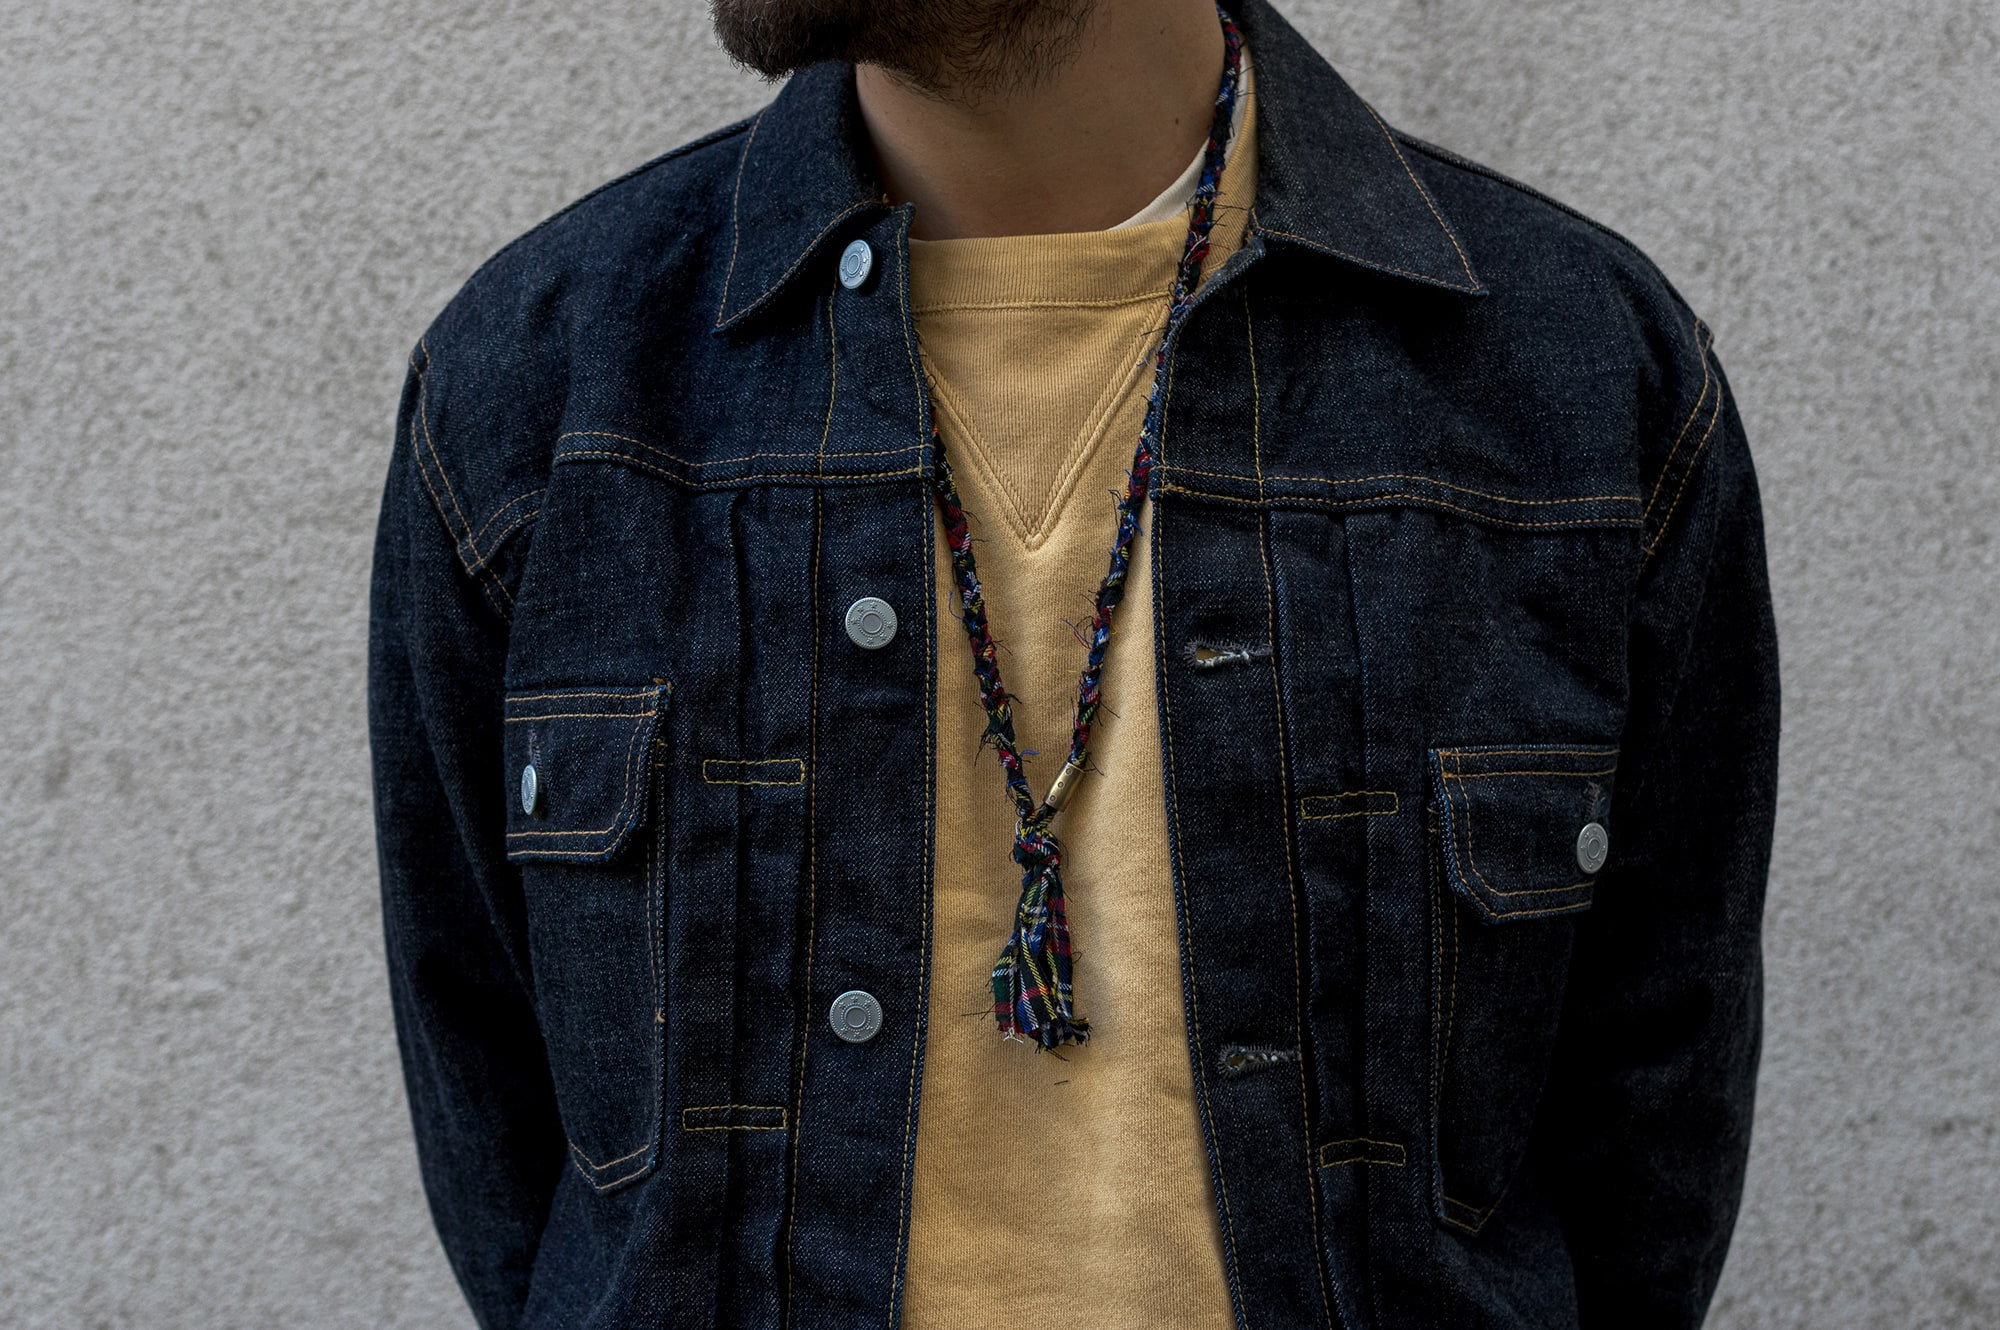 suit sypply raw selvedge trucker denim jacket type-1 / vest en jean brute et collier Borali